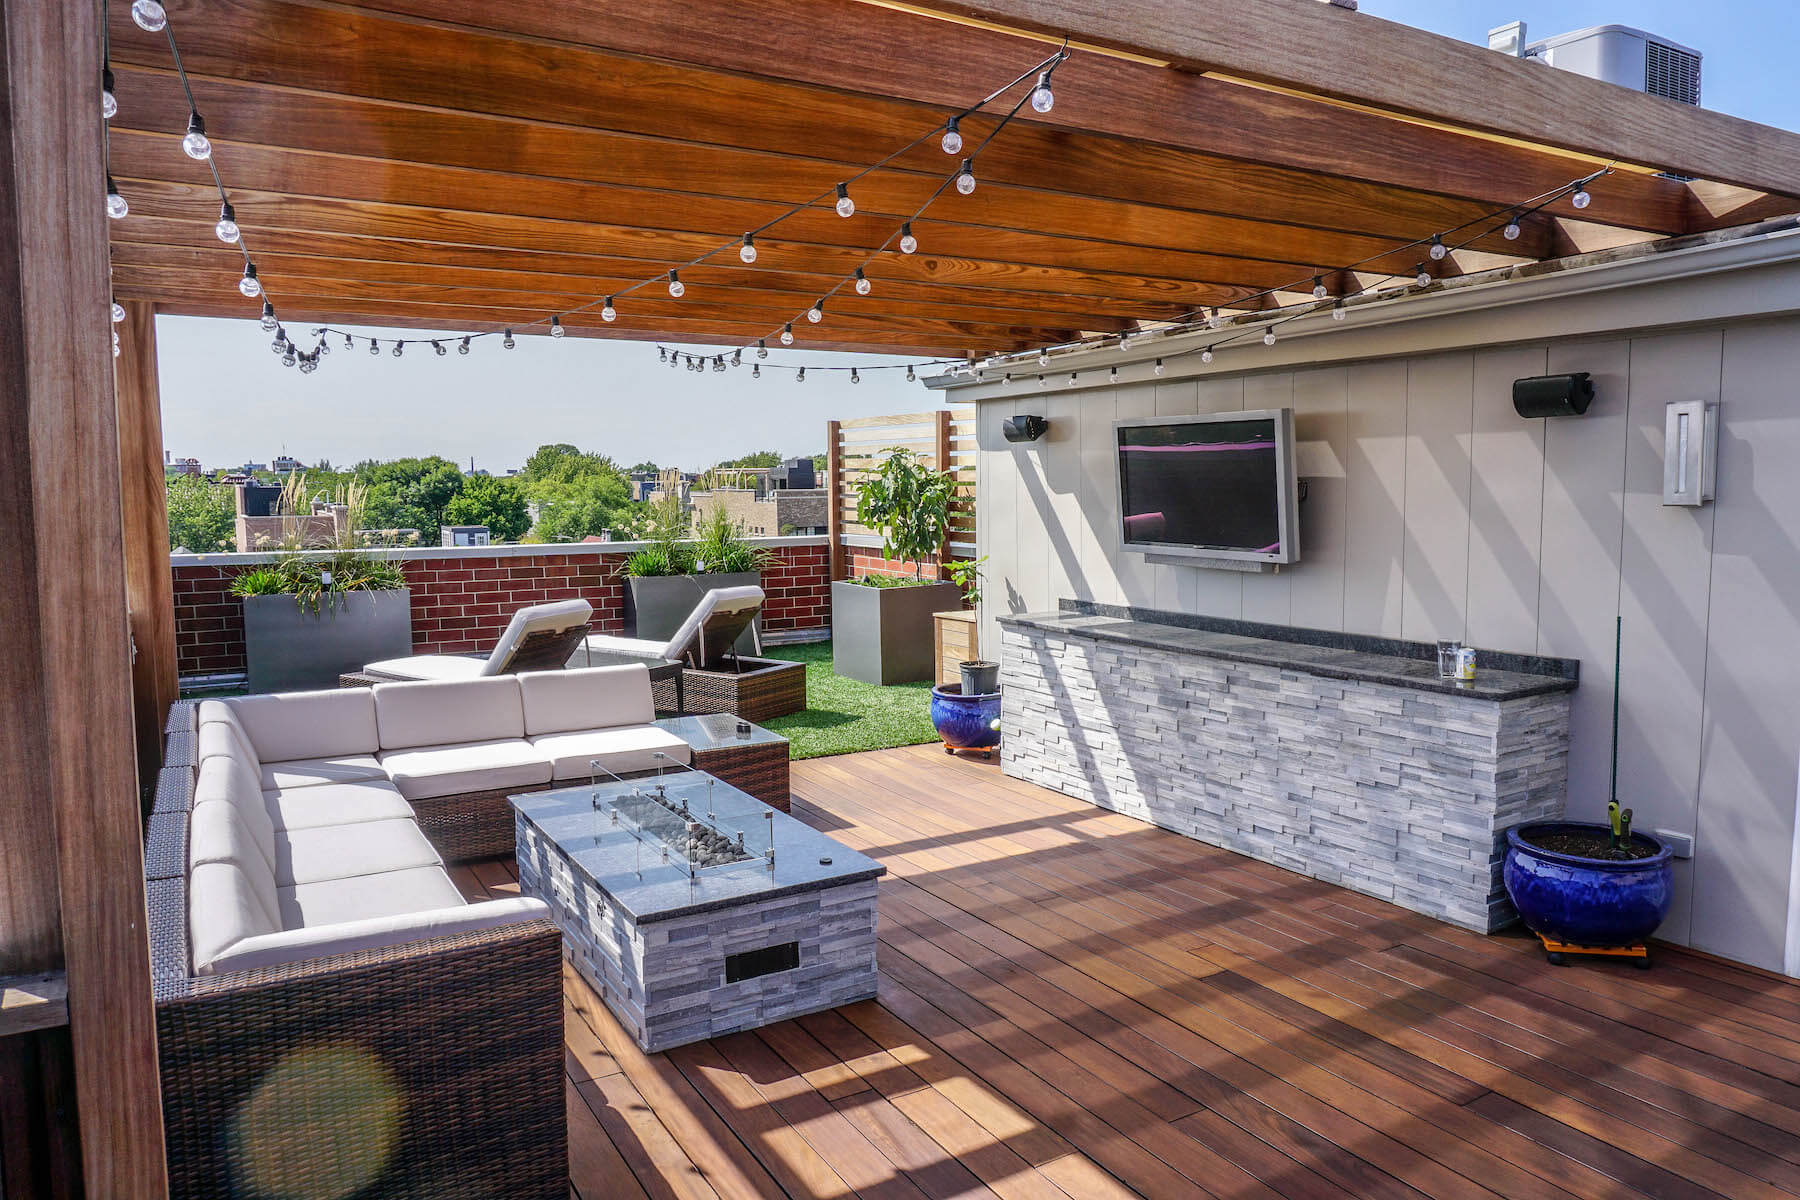 Outdoor A/V and Fire Pit